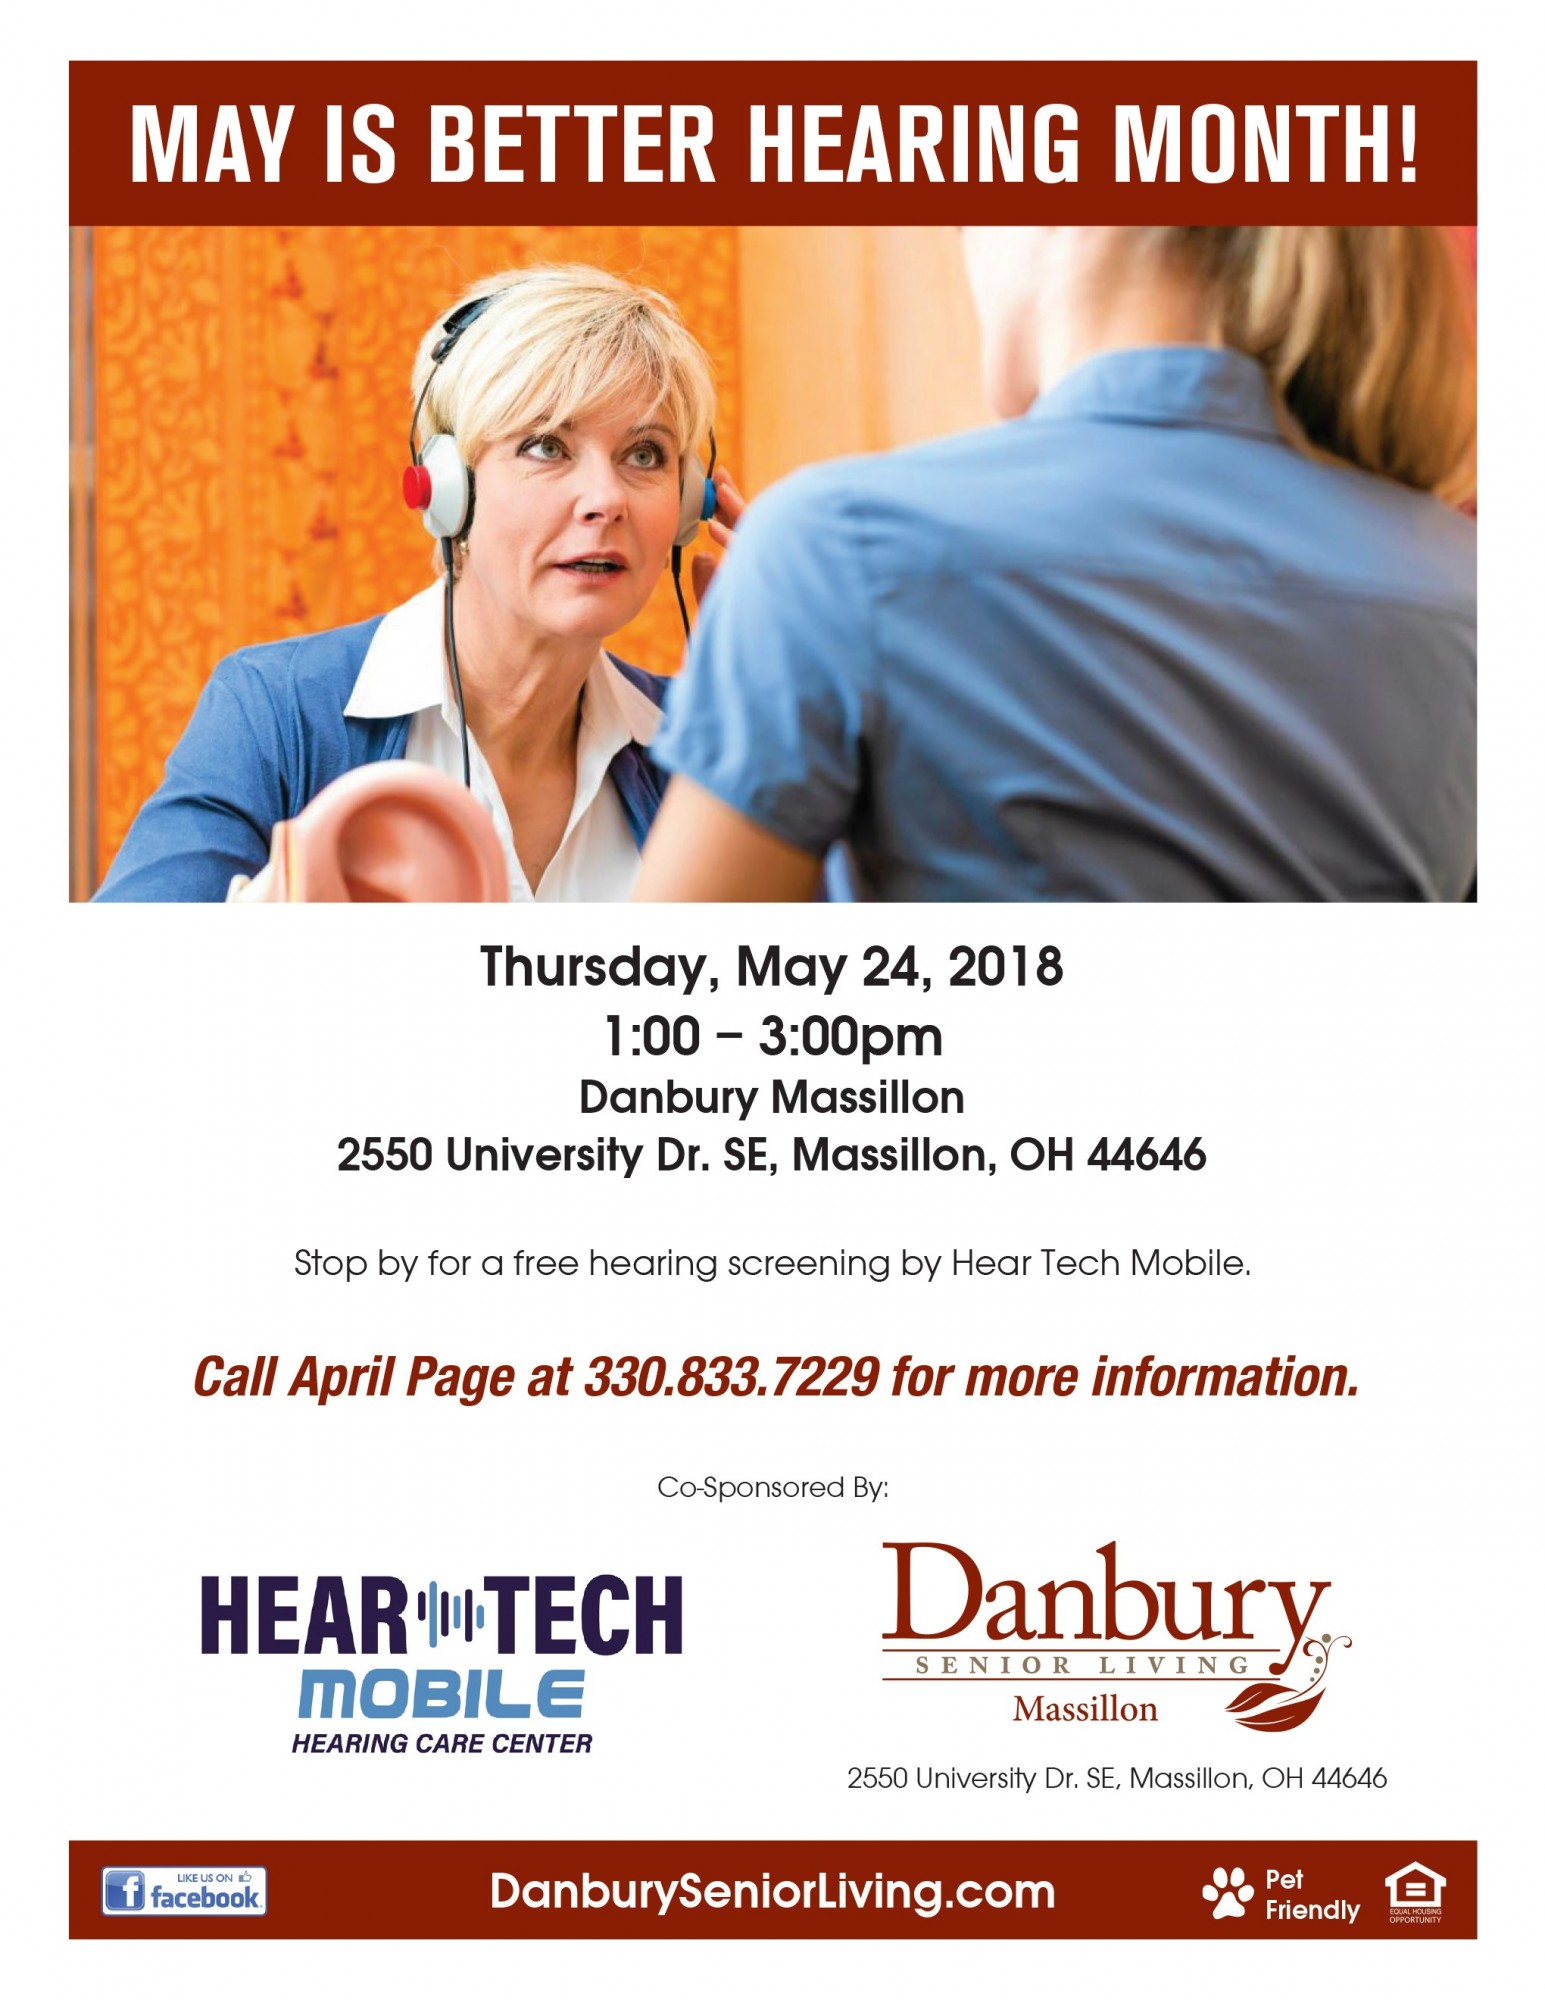 May Is Better Hearing Month Danbury Assisted Living